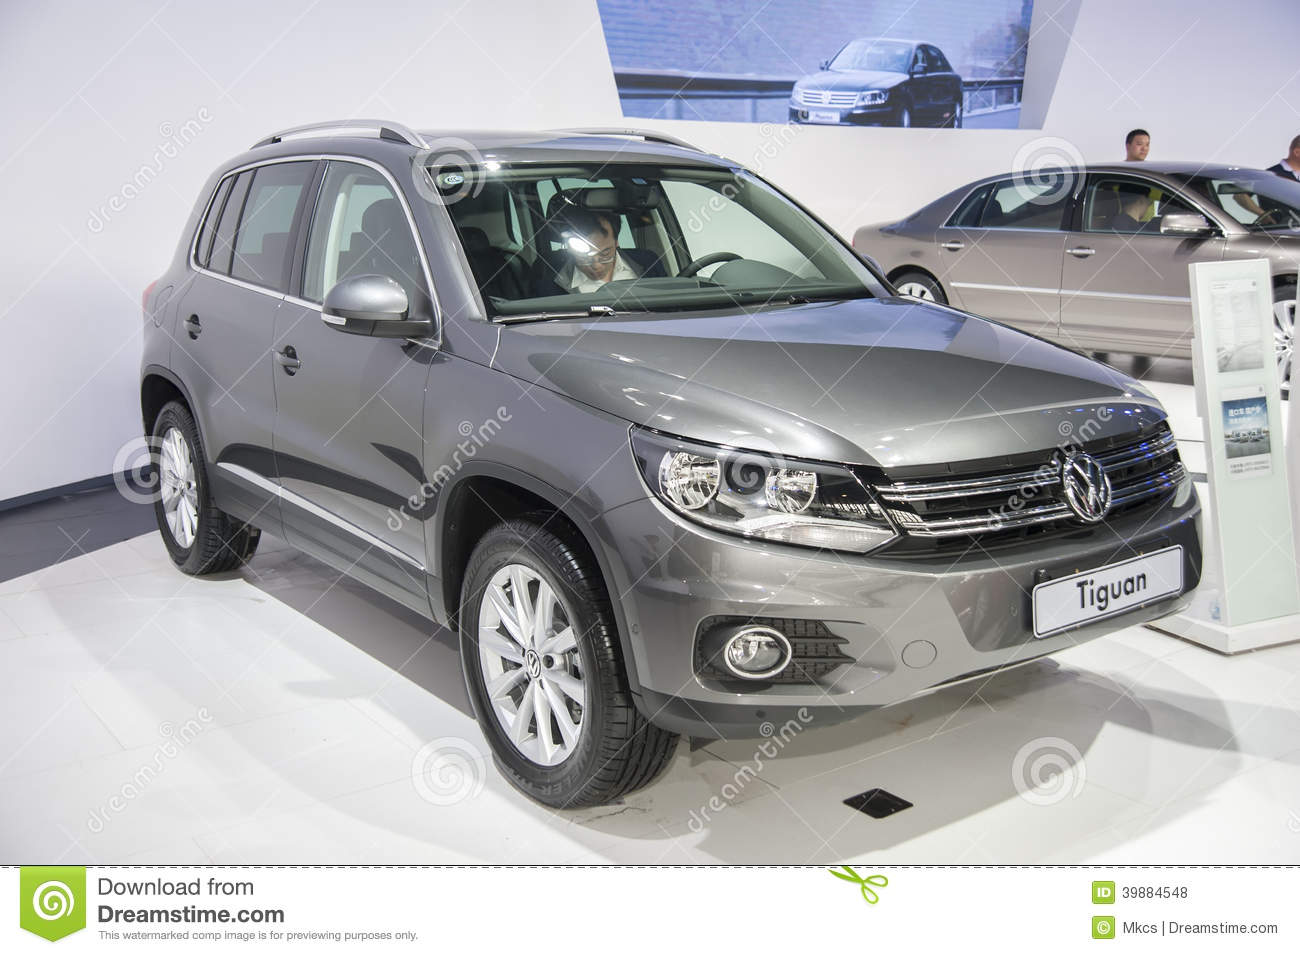 voiture tiguan grise de volkswagen photo stock ditorial image 39884548. Black Bedroom Furniture Sets. Home Design Ideas